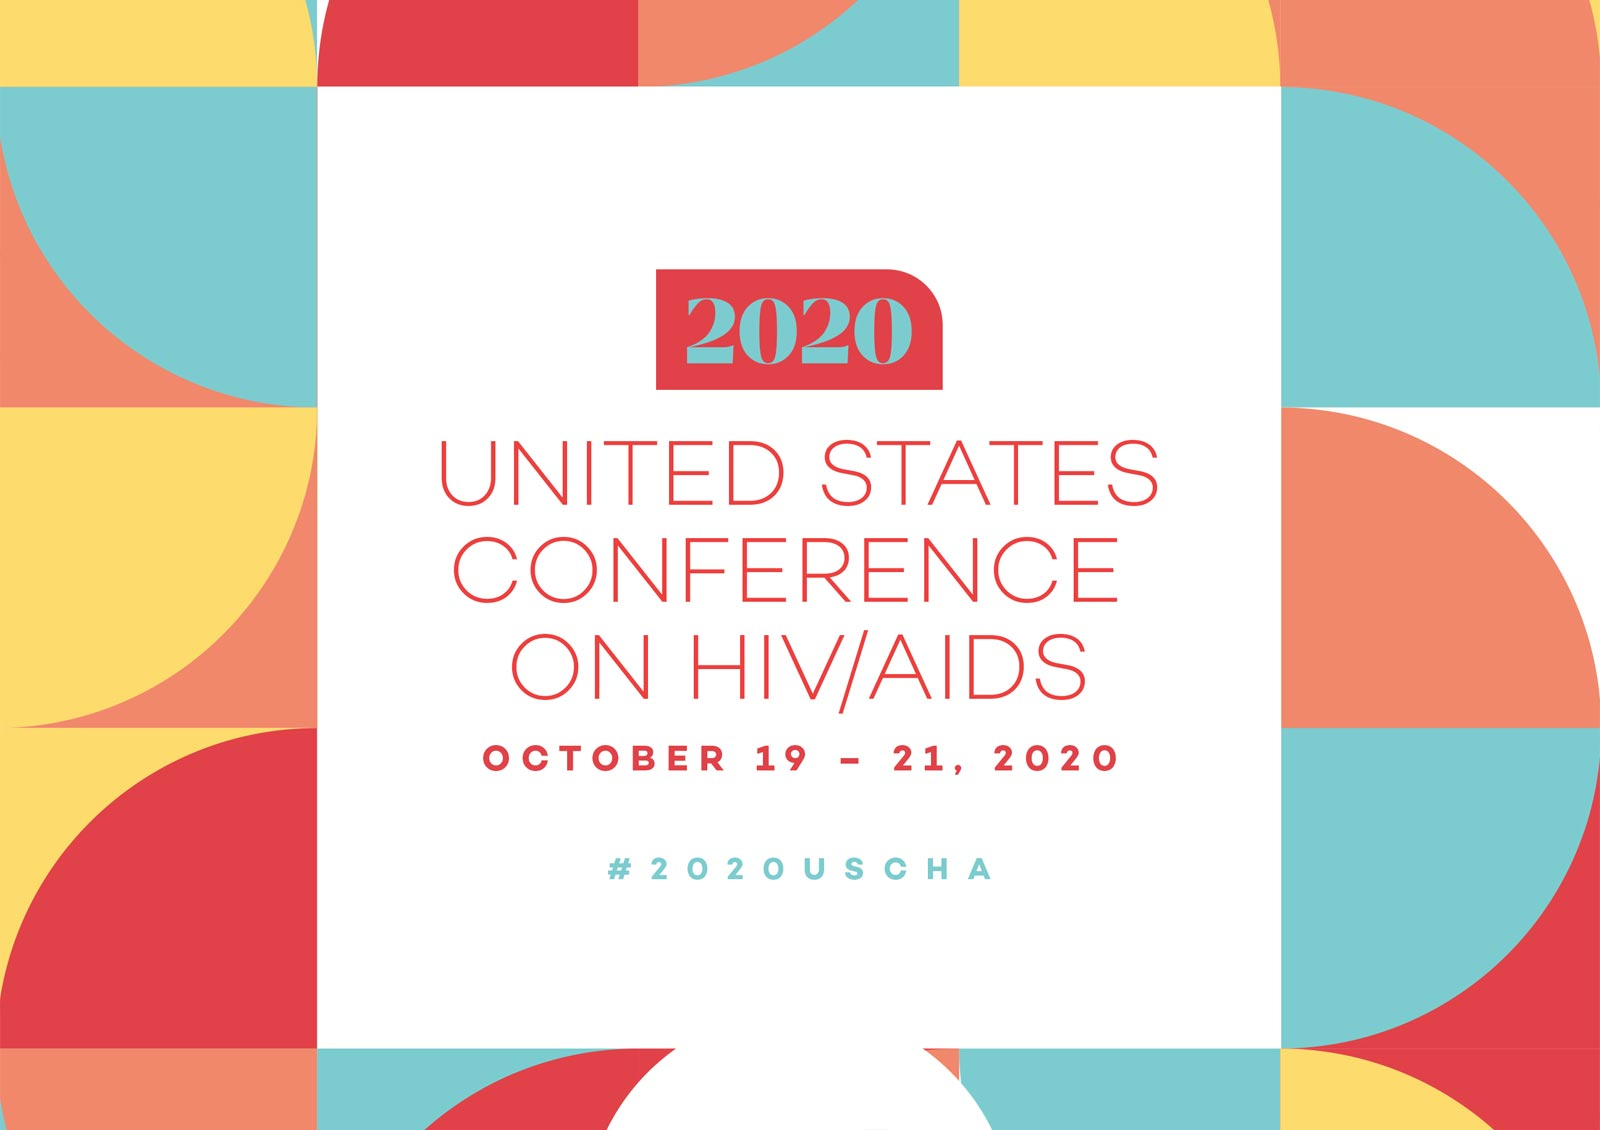 United States Conference on HIV/AIDS, October 19-21, 2020